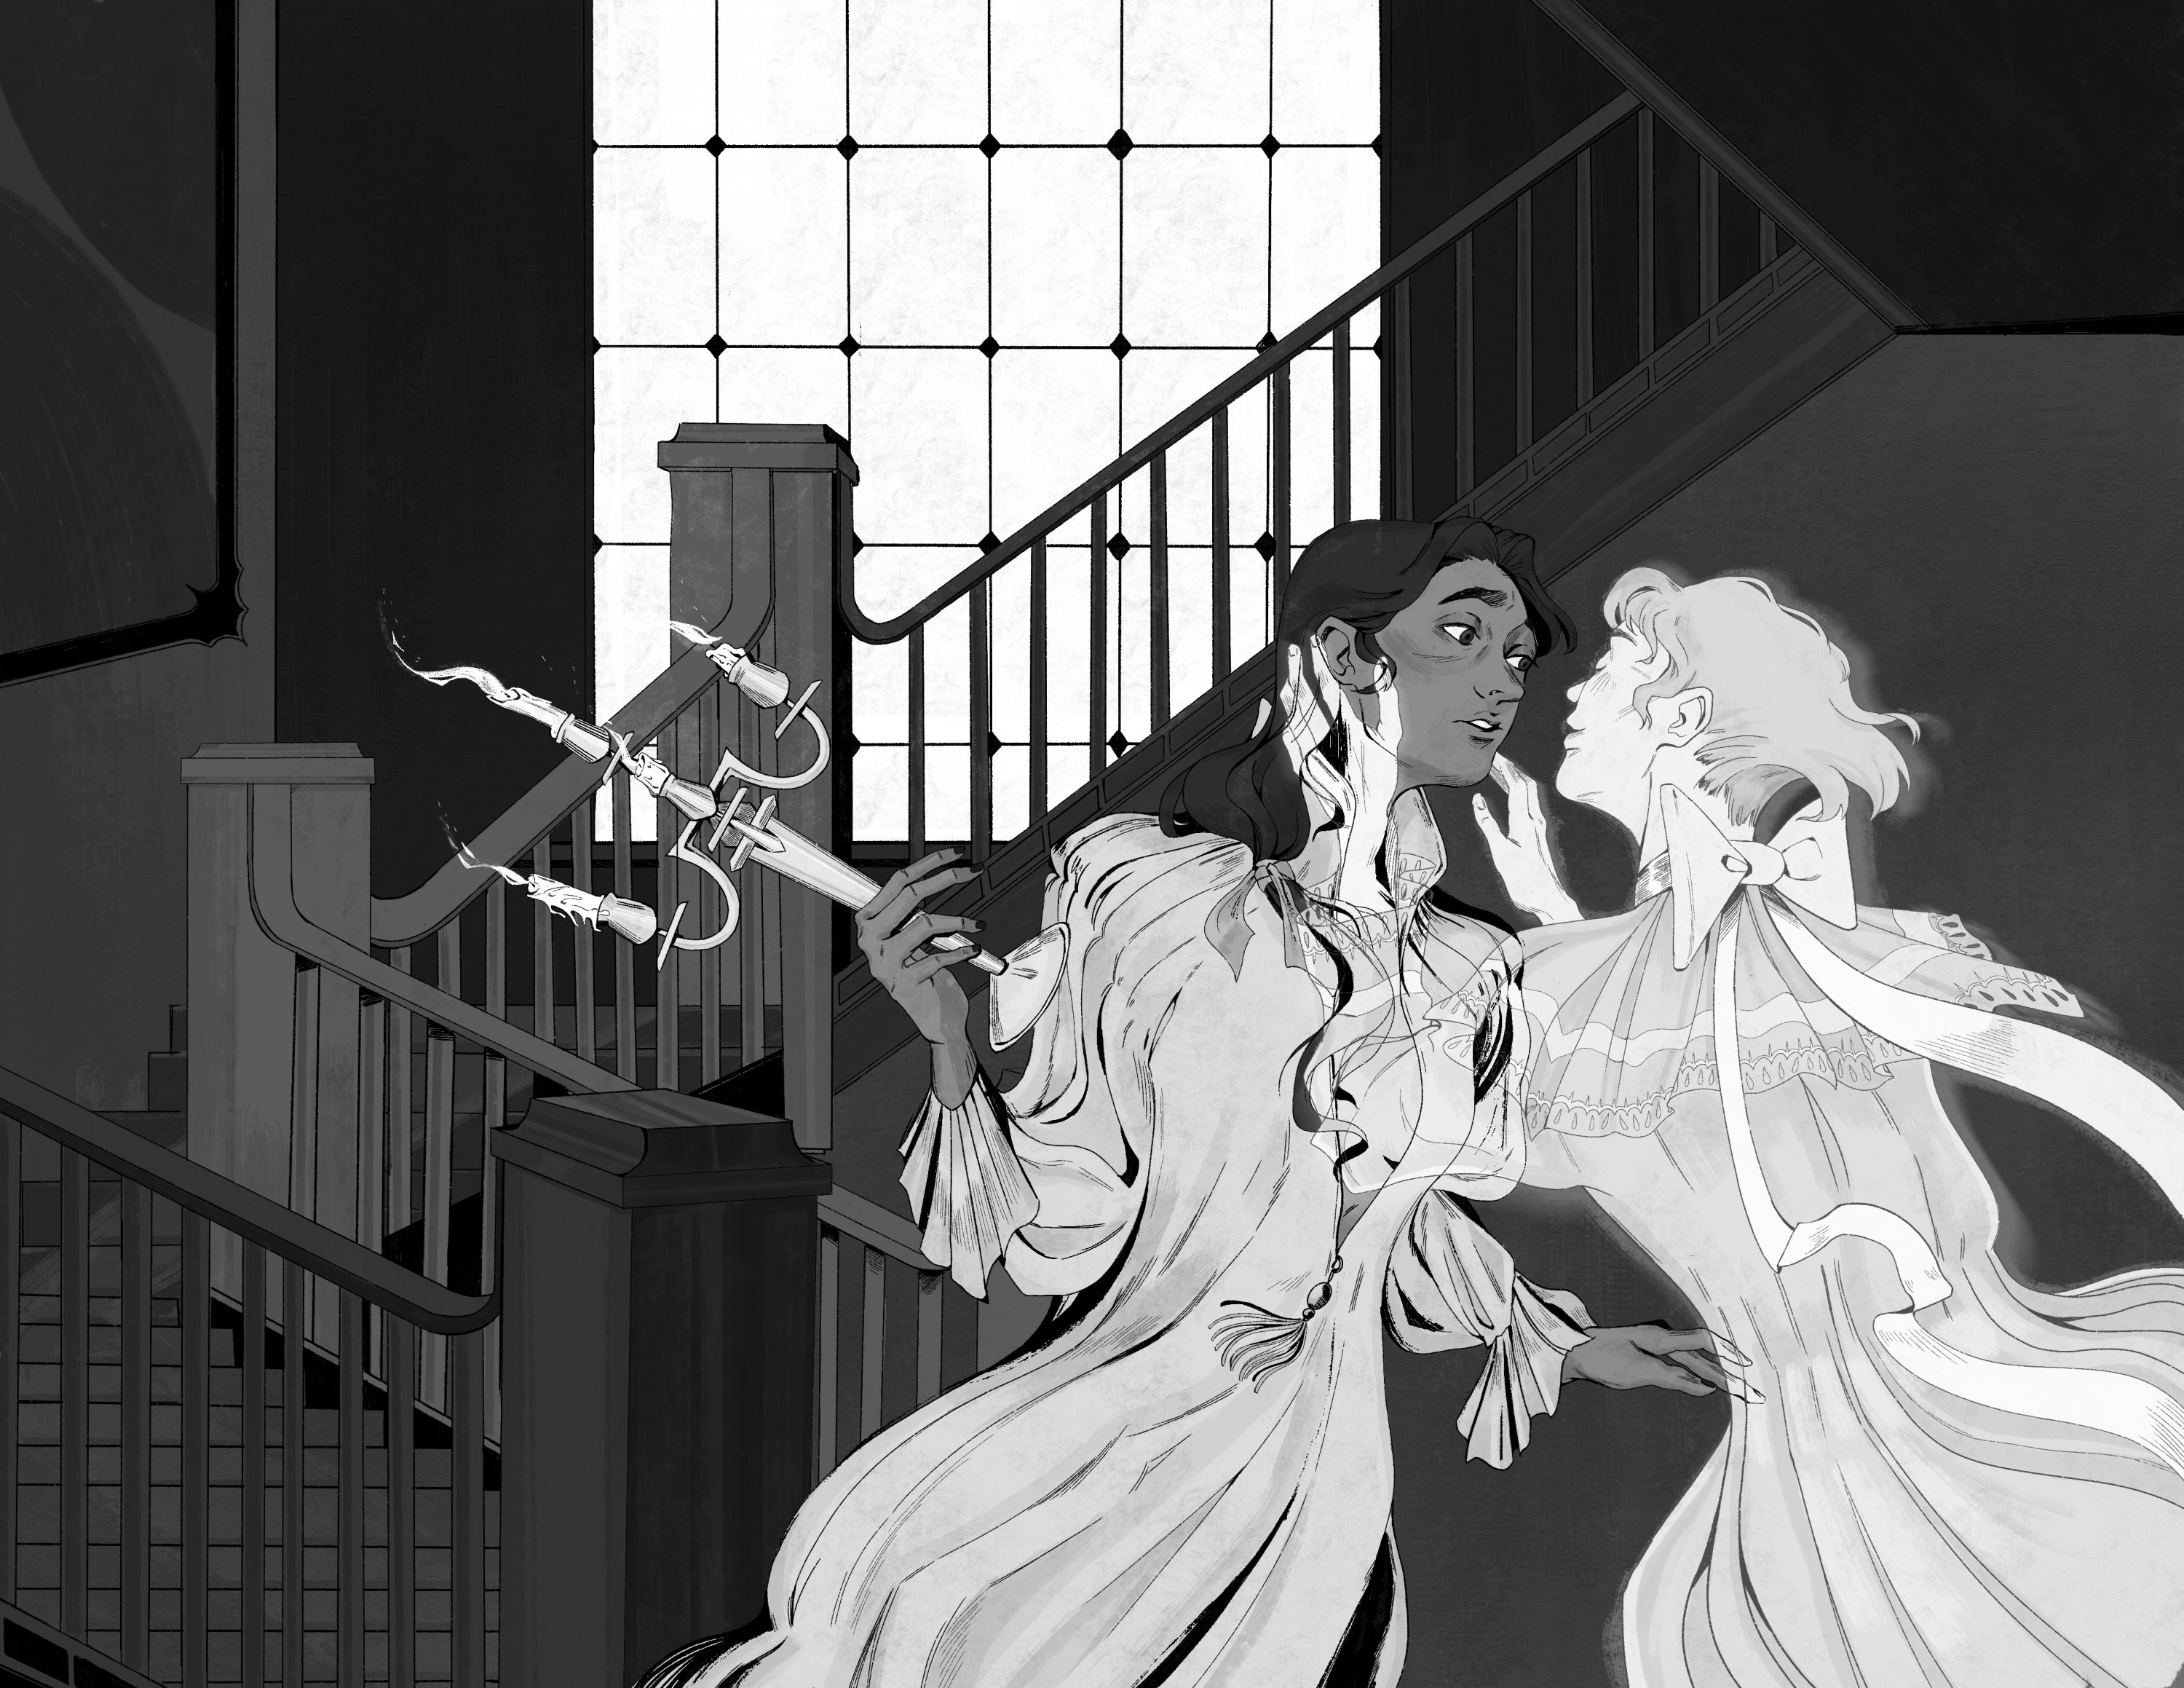 A black and white illustration of a girl descending the staircase into the embrace of a ghost.